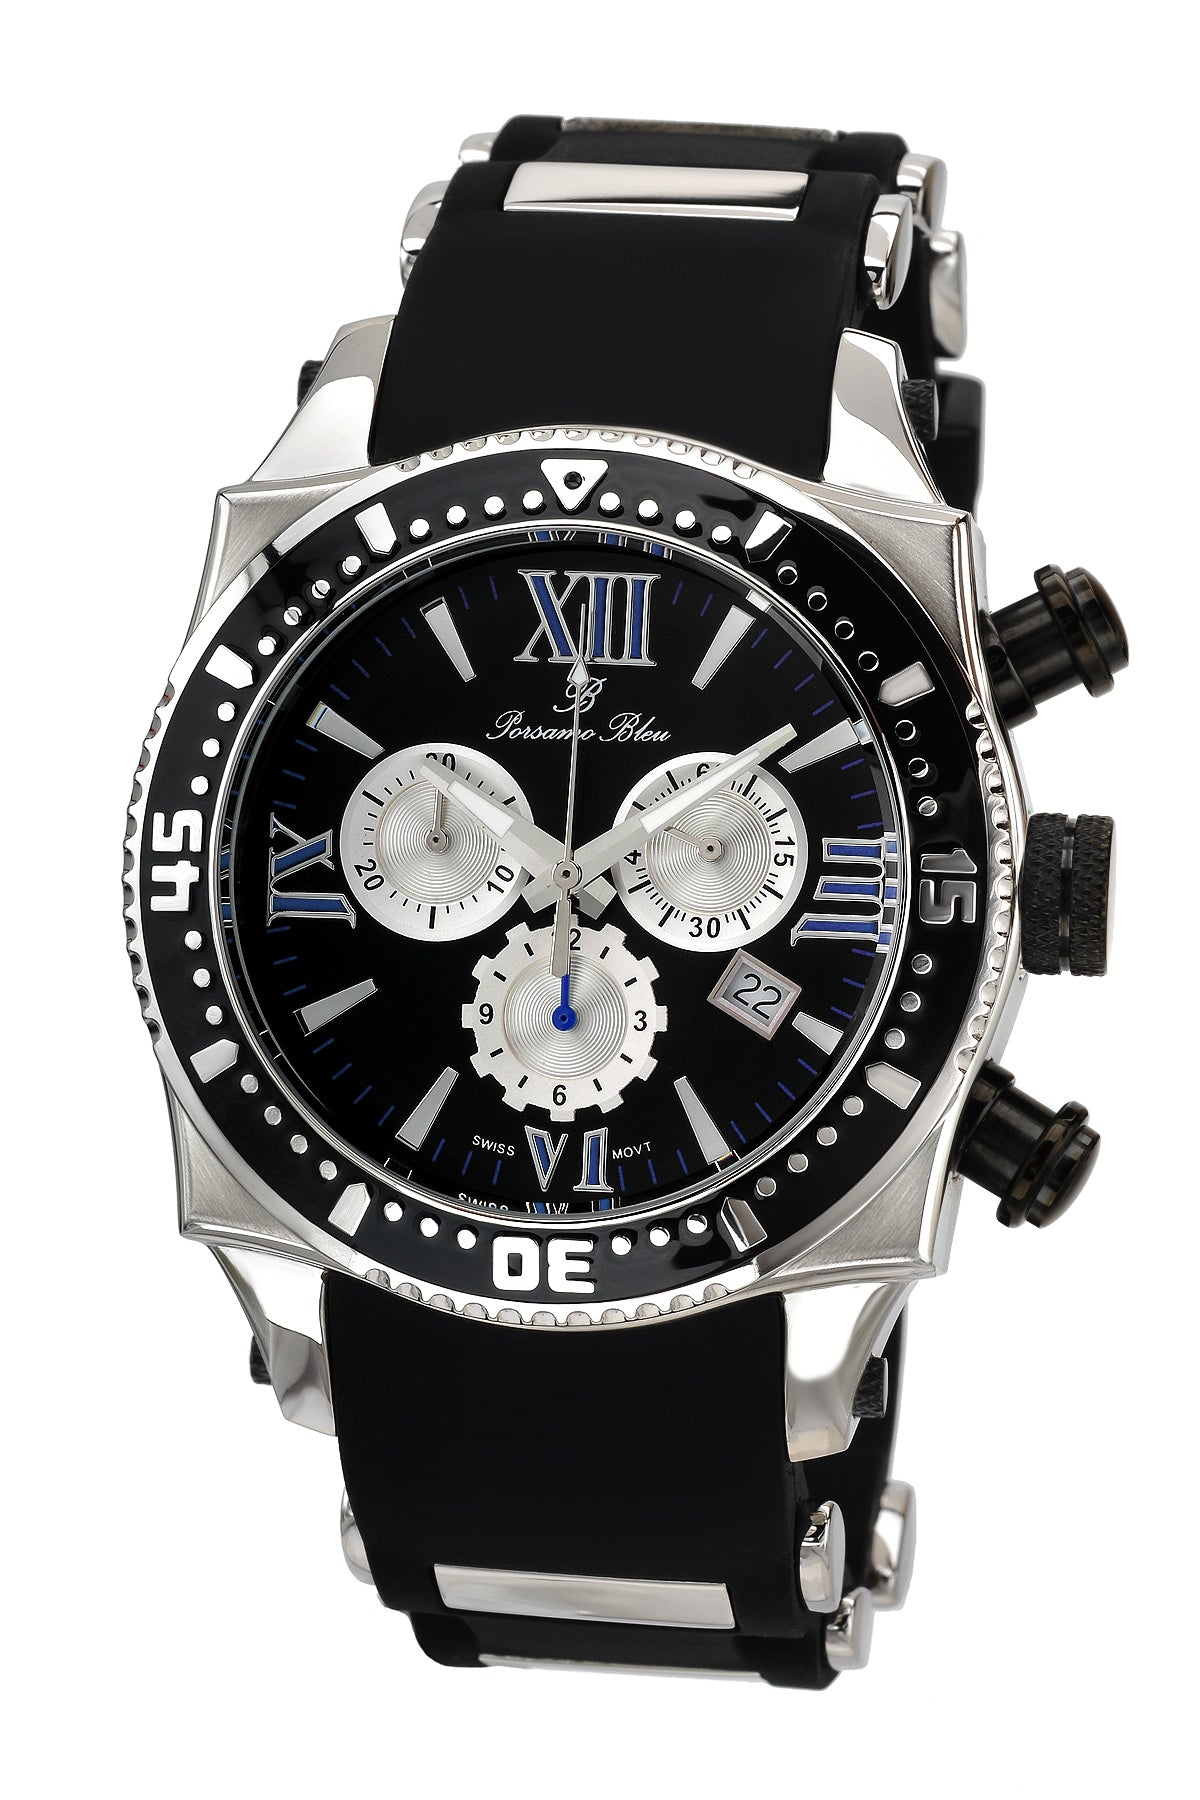 Porsamo Bleu Milan M luxury chronograph men's watch, silicone strap, silver, black, 034BMIR